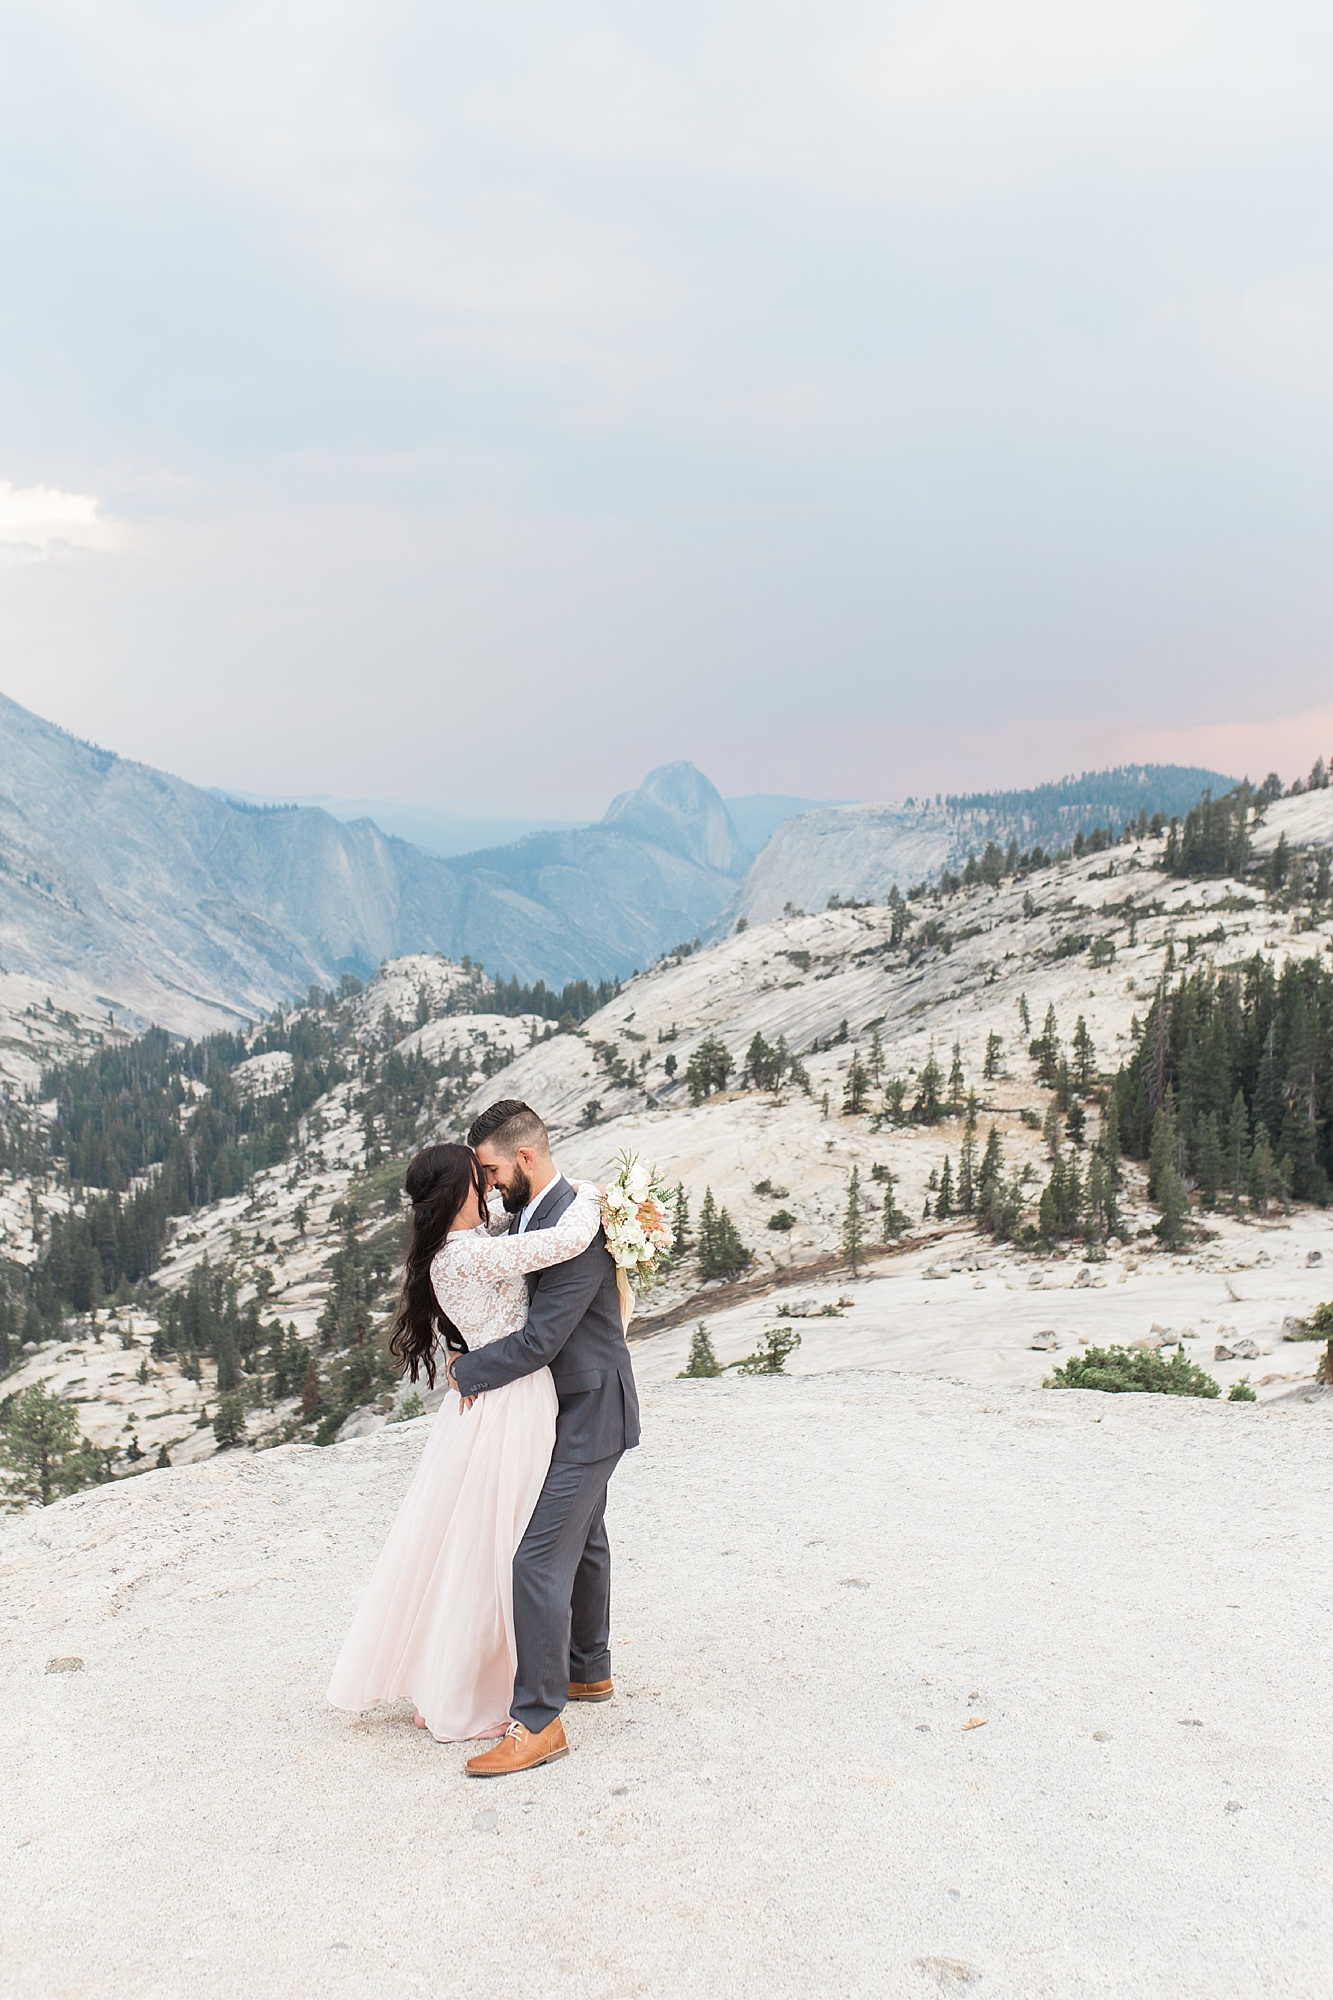 Ashley Baumgartner Photography & Calligraphy Yosemite Vow Renewal featured on 100 Layer Cake_0009.jpg